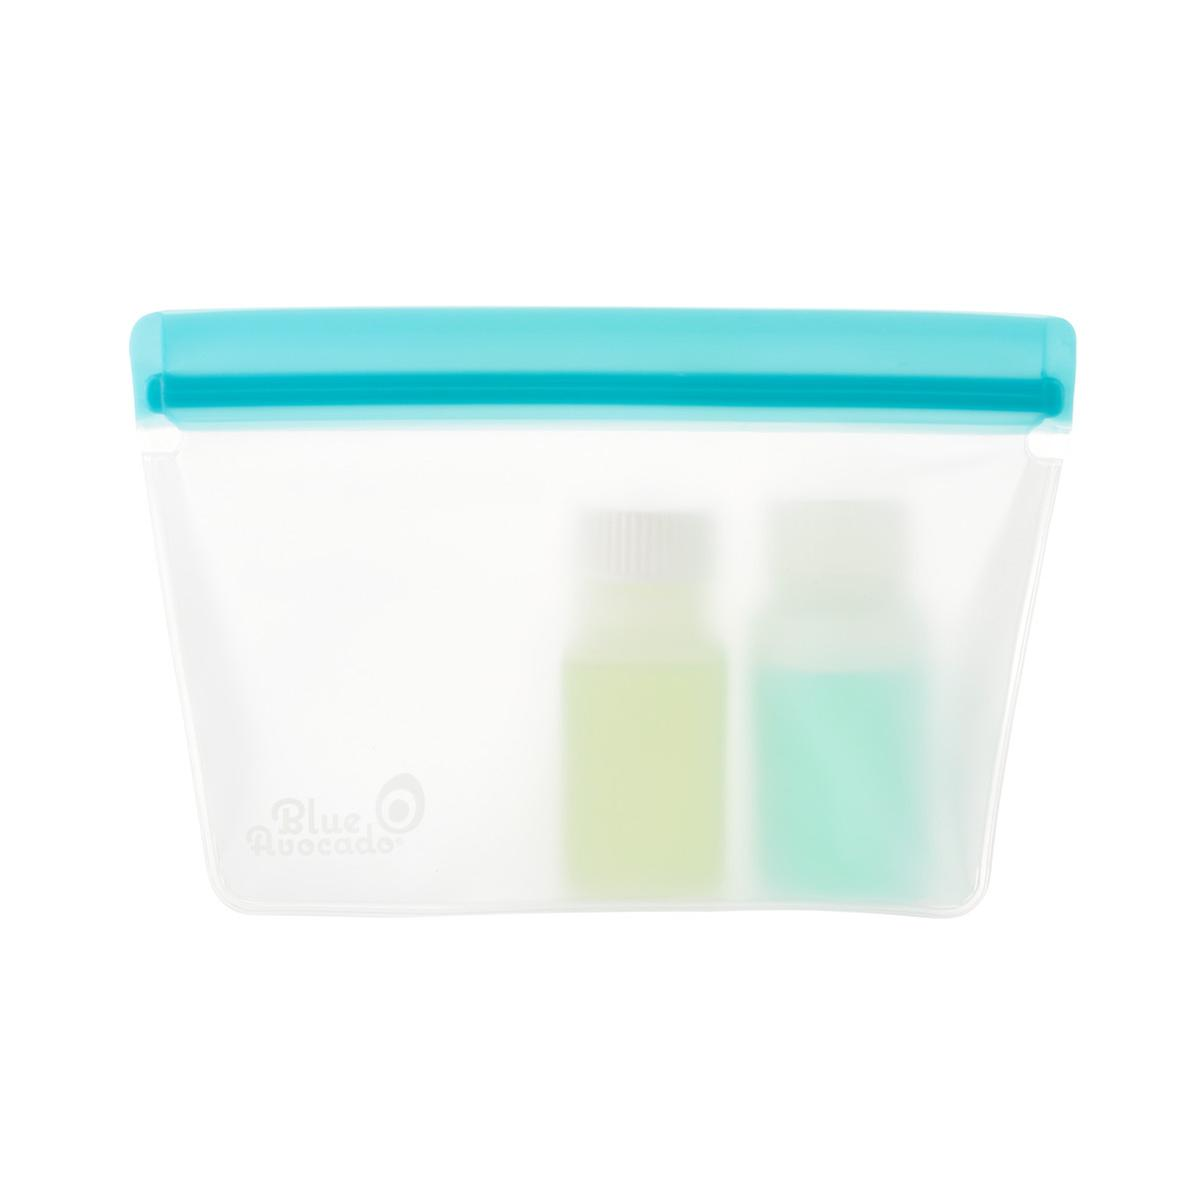 Re-Zip Reusable 2 Cup Aqua Storage Bag